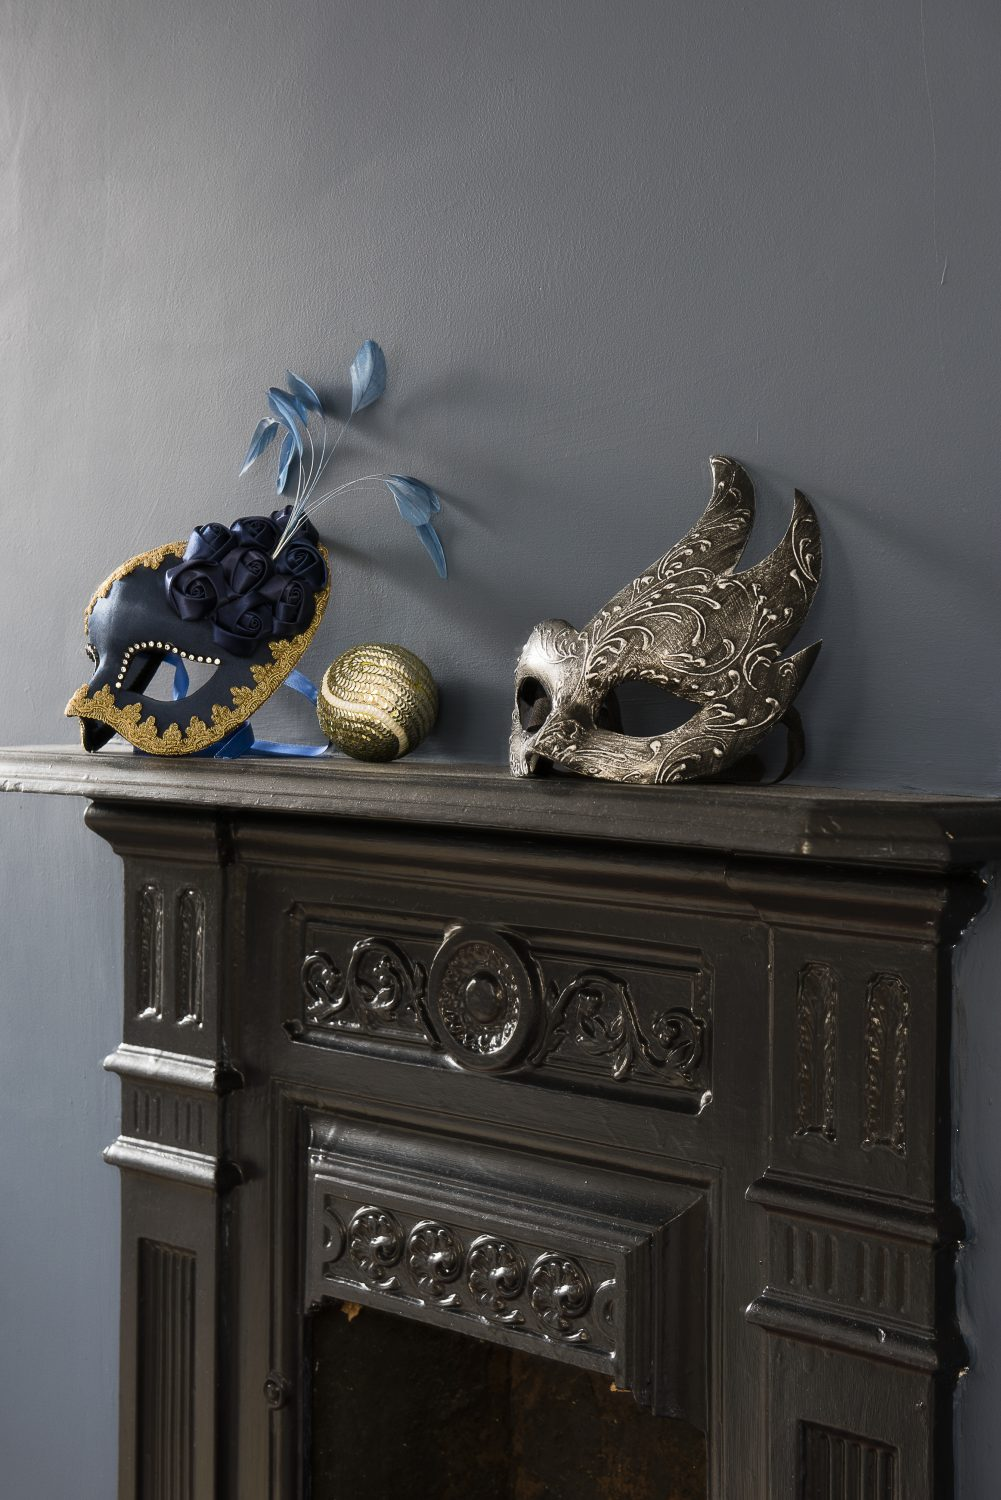 Venetian masquerade masks on the mantlepiece were a present from Simon